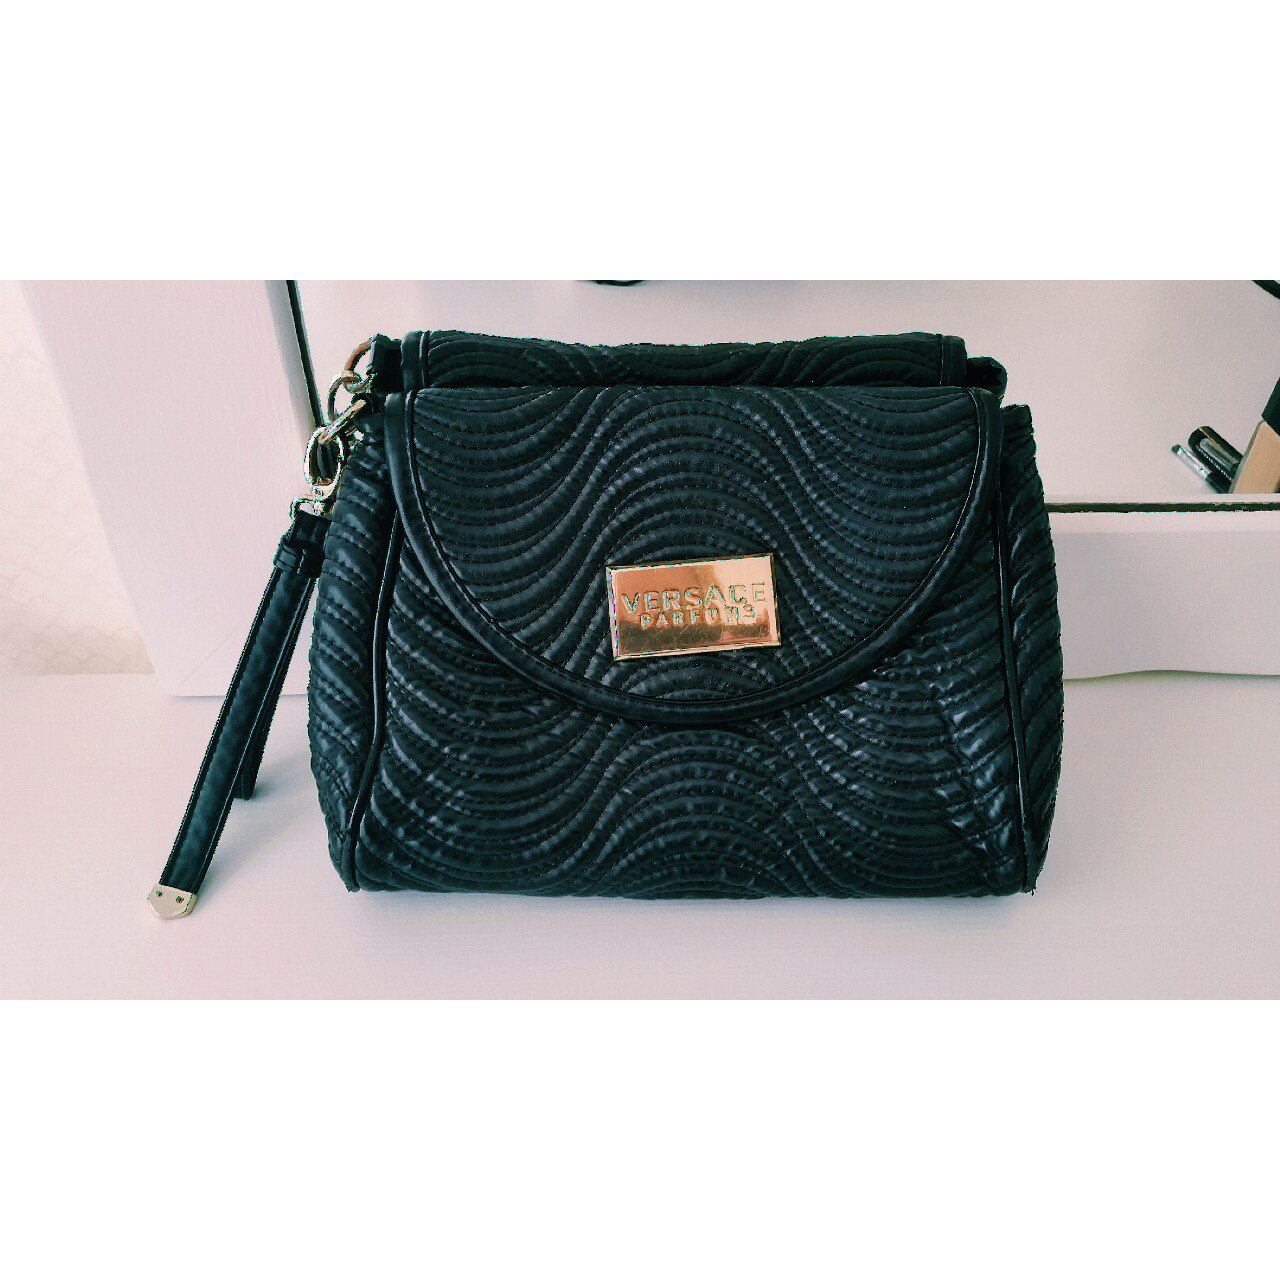 07945dfa2f Versace Parfums clutch Black with gold toned hardware Strap - Depop